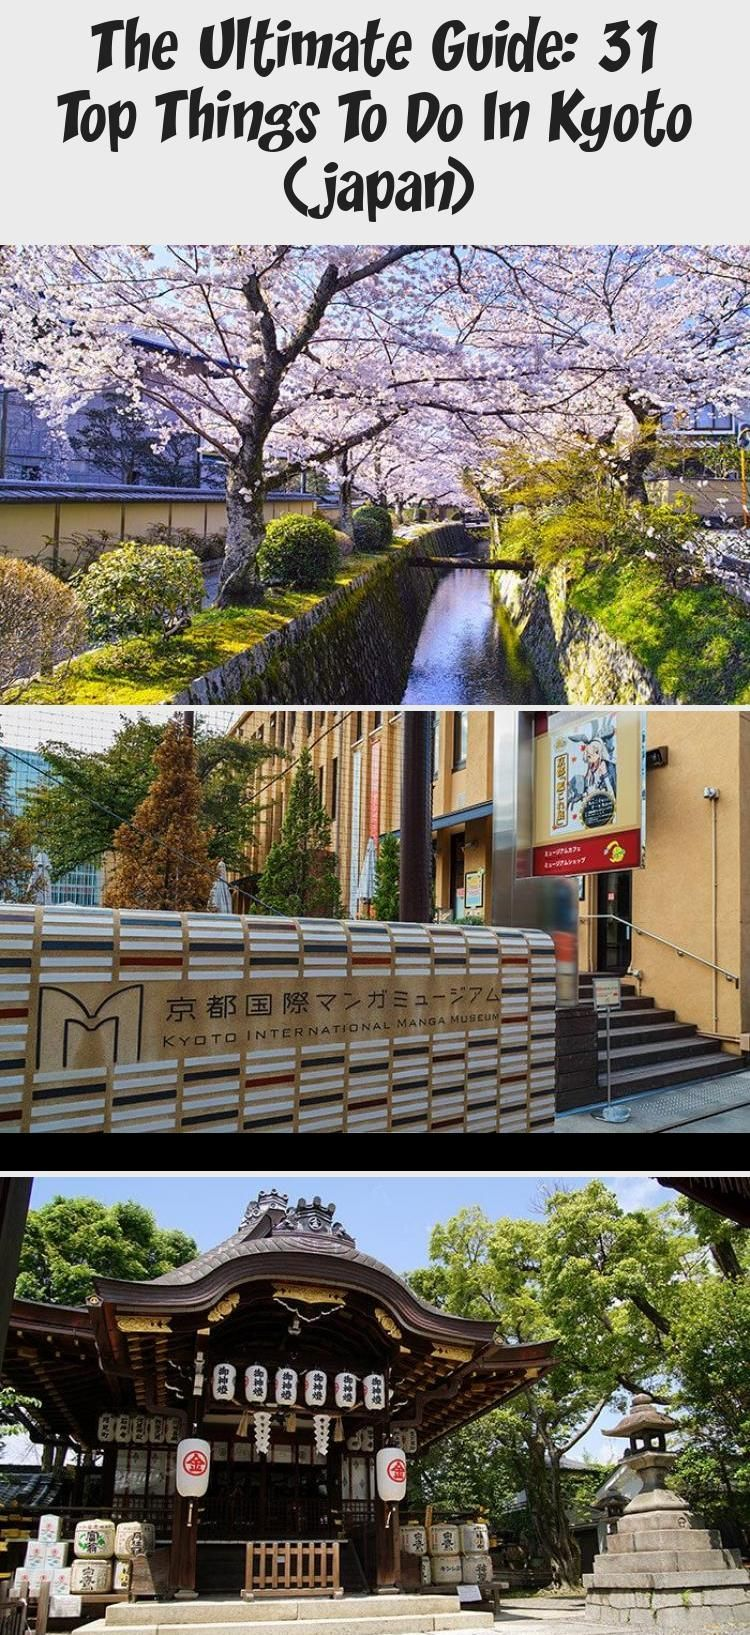 The Ultimate Guide: 31 Top Things To Do In Kyoto (japan) - Travelling : Start planning your trip and travel to Kyoto, Japan! This travel guide will show you the top things to do in Kyoto. #Kyoto #Japan #TravelKyoto #KyotoTravel #KyotoTravelGuide #JapanTravelGuide #Thingstodoinkyoto #Whattodoinkyoto #TravelDestinationsTexas #TravelDestinationsAesthetic #CheapTravelDestinations #TravelDestinationsWinter #TravelDestinationsEgypt #Ultimate #Guide: #Things